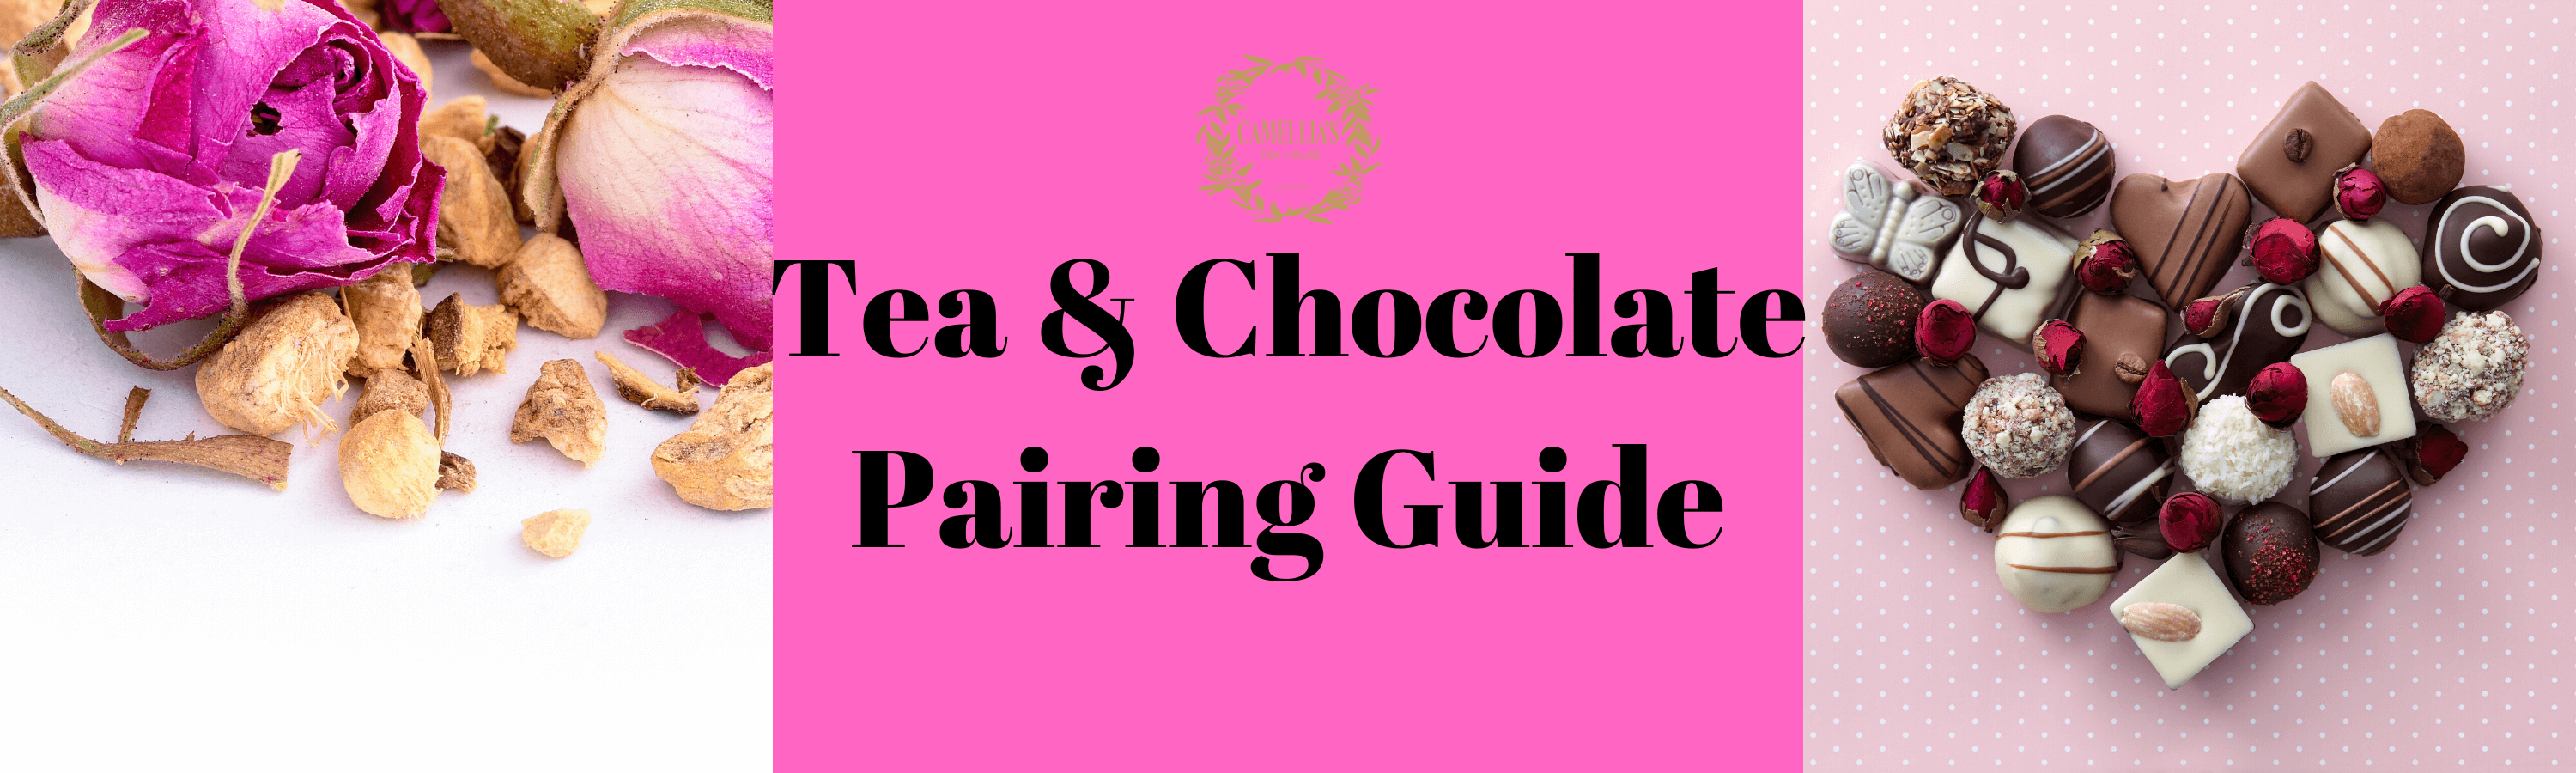 Chocolate and Tea Pairing Guide